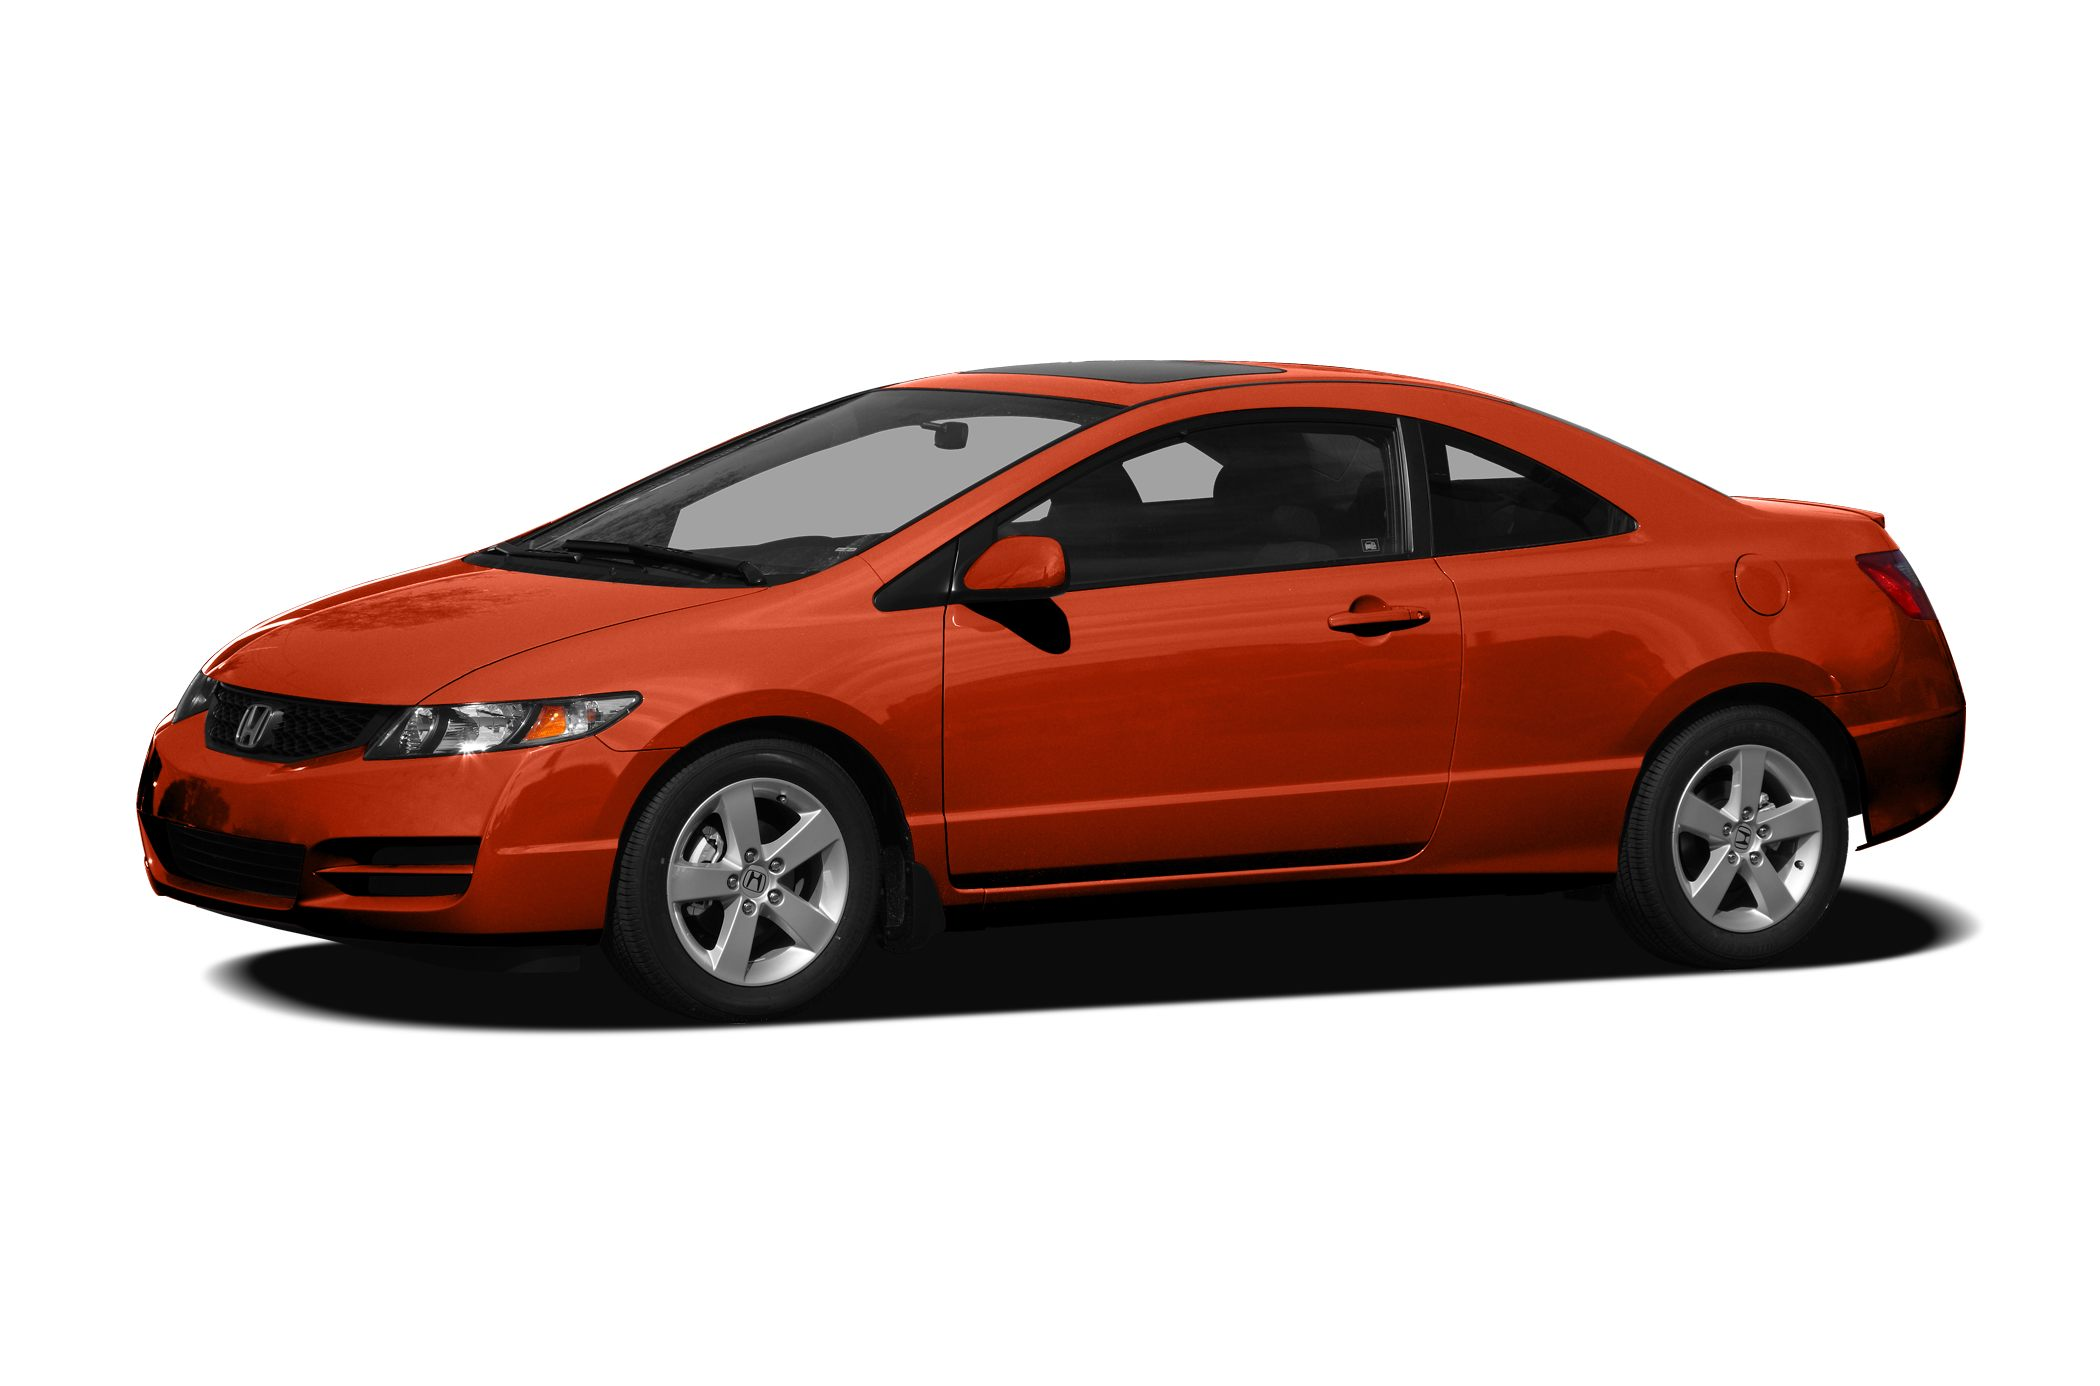 2010 Honda Civic LX  WHEN IT COMES TOEXCELLENCE IN USED CAR SALES YOU KNOW YOURE AT STAR AUTO